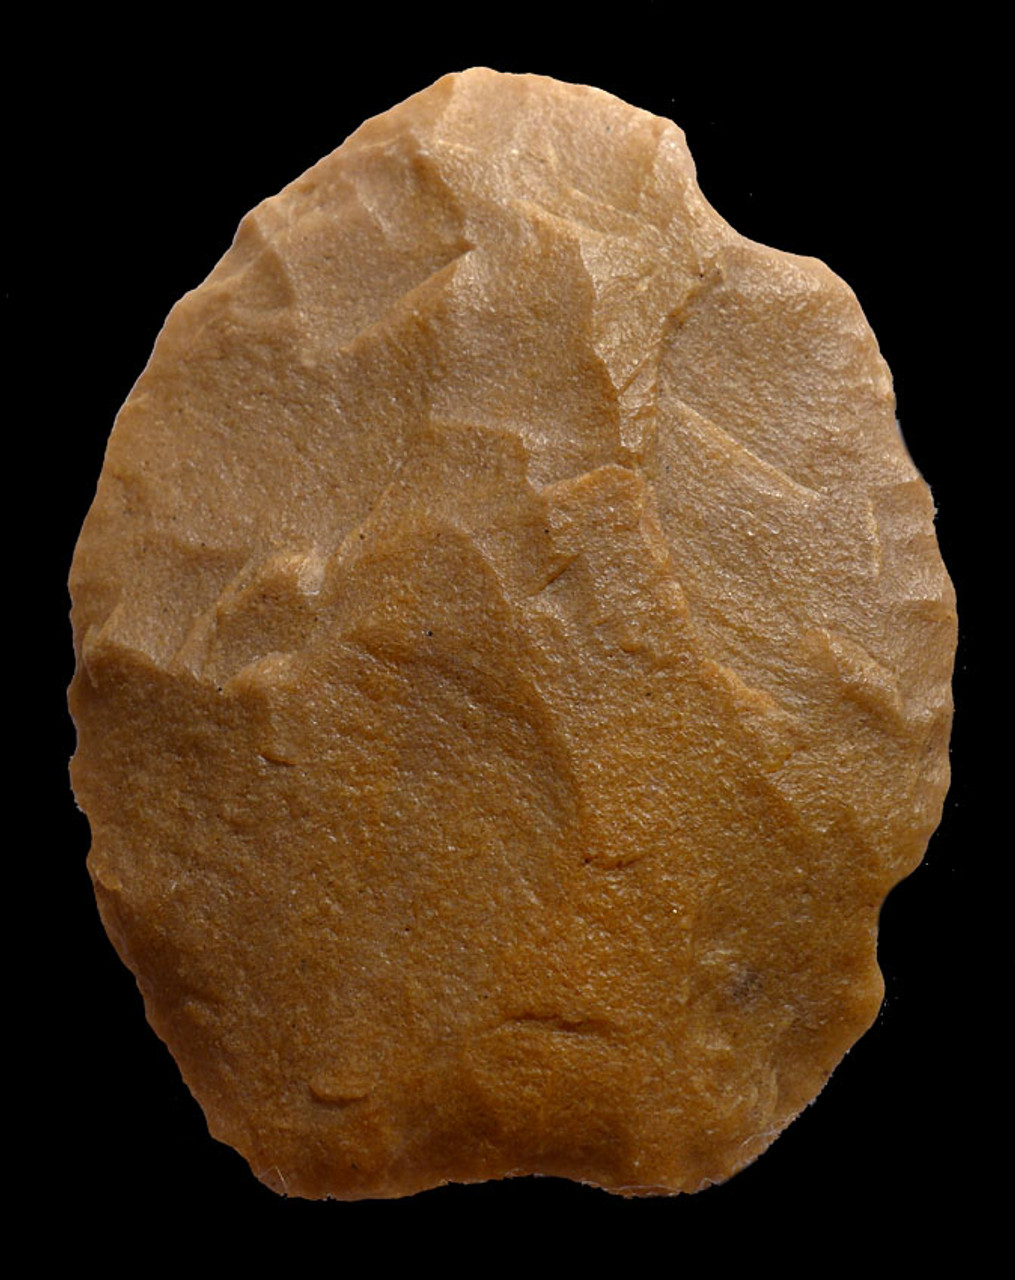 CAP189 - RARE TENERIAN AFRICAN NEOLITHIC LARGE MULTI-PURPOSE OVATE BLADE SCRAPER FROM THE PEOPLE OF THE GREEN SAHARA